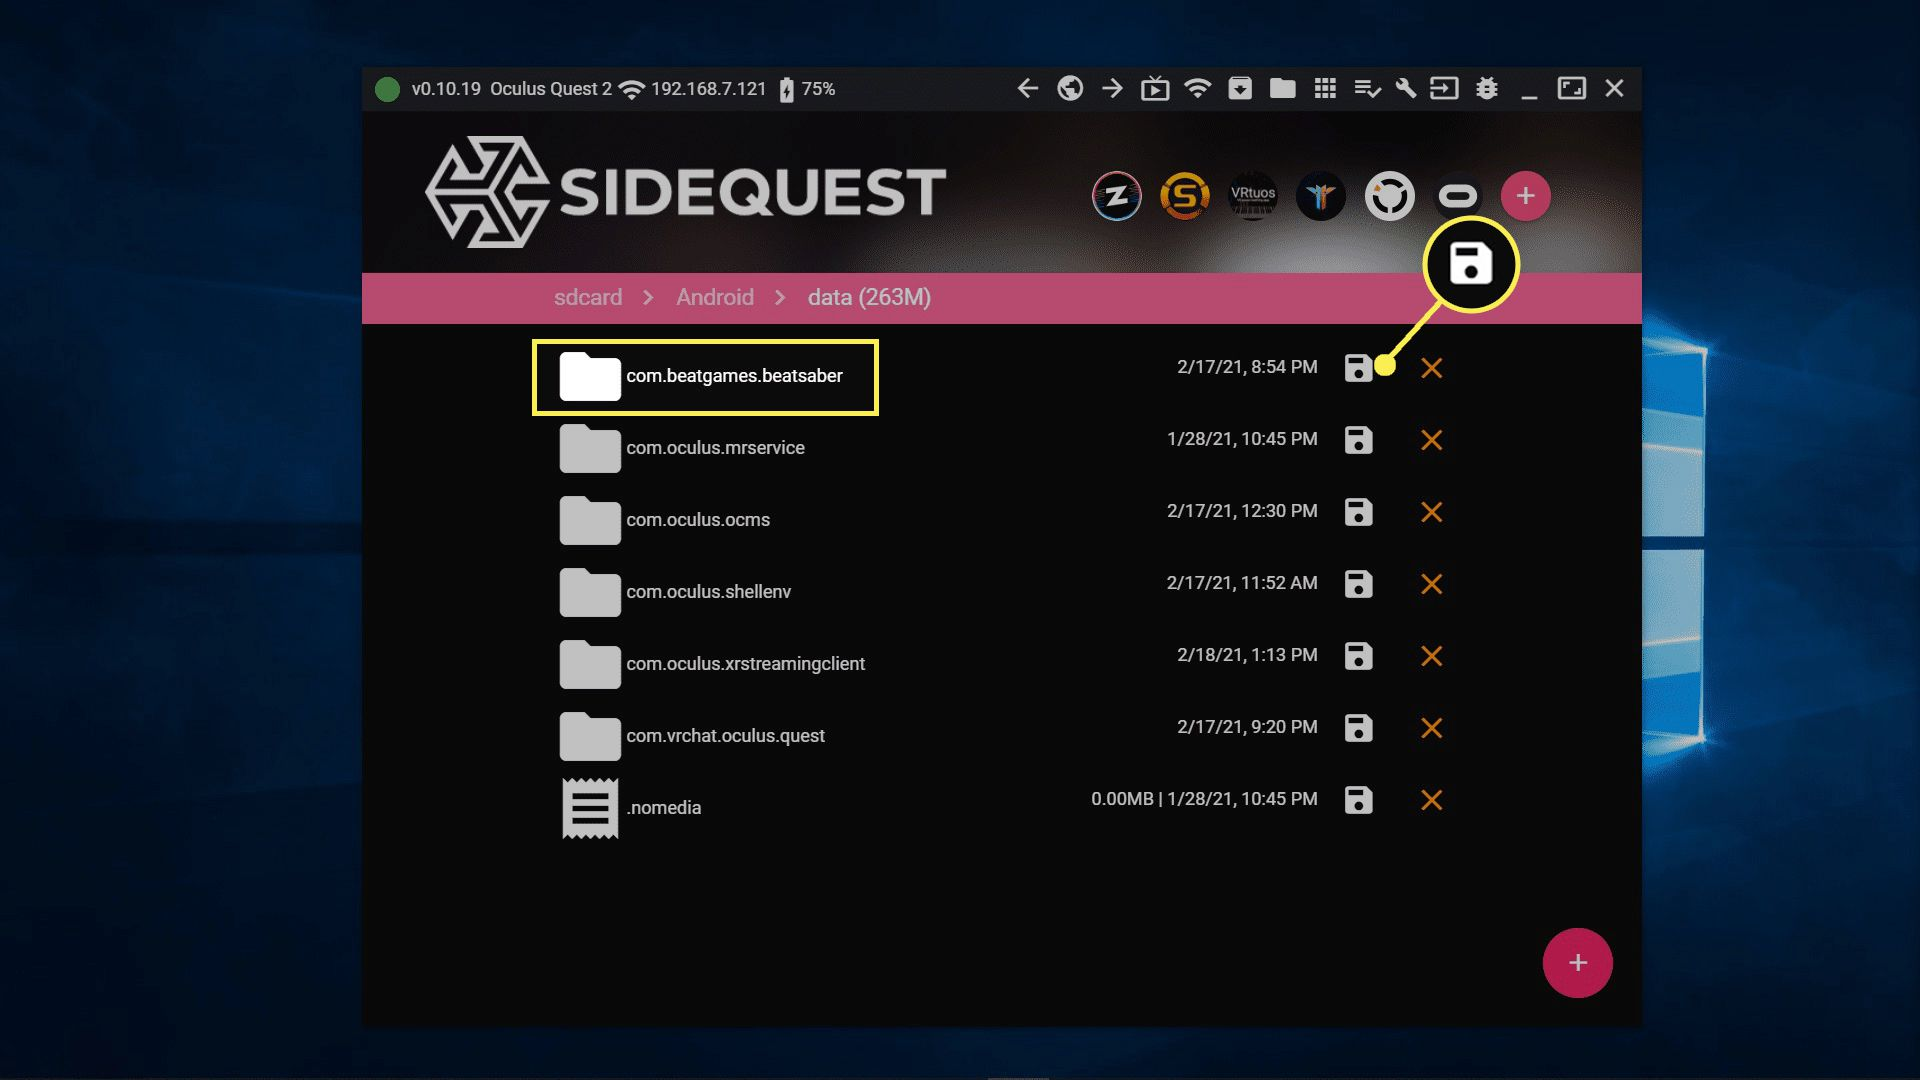 Installed apps listed in SideQuest.